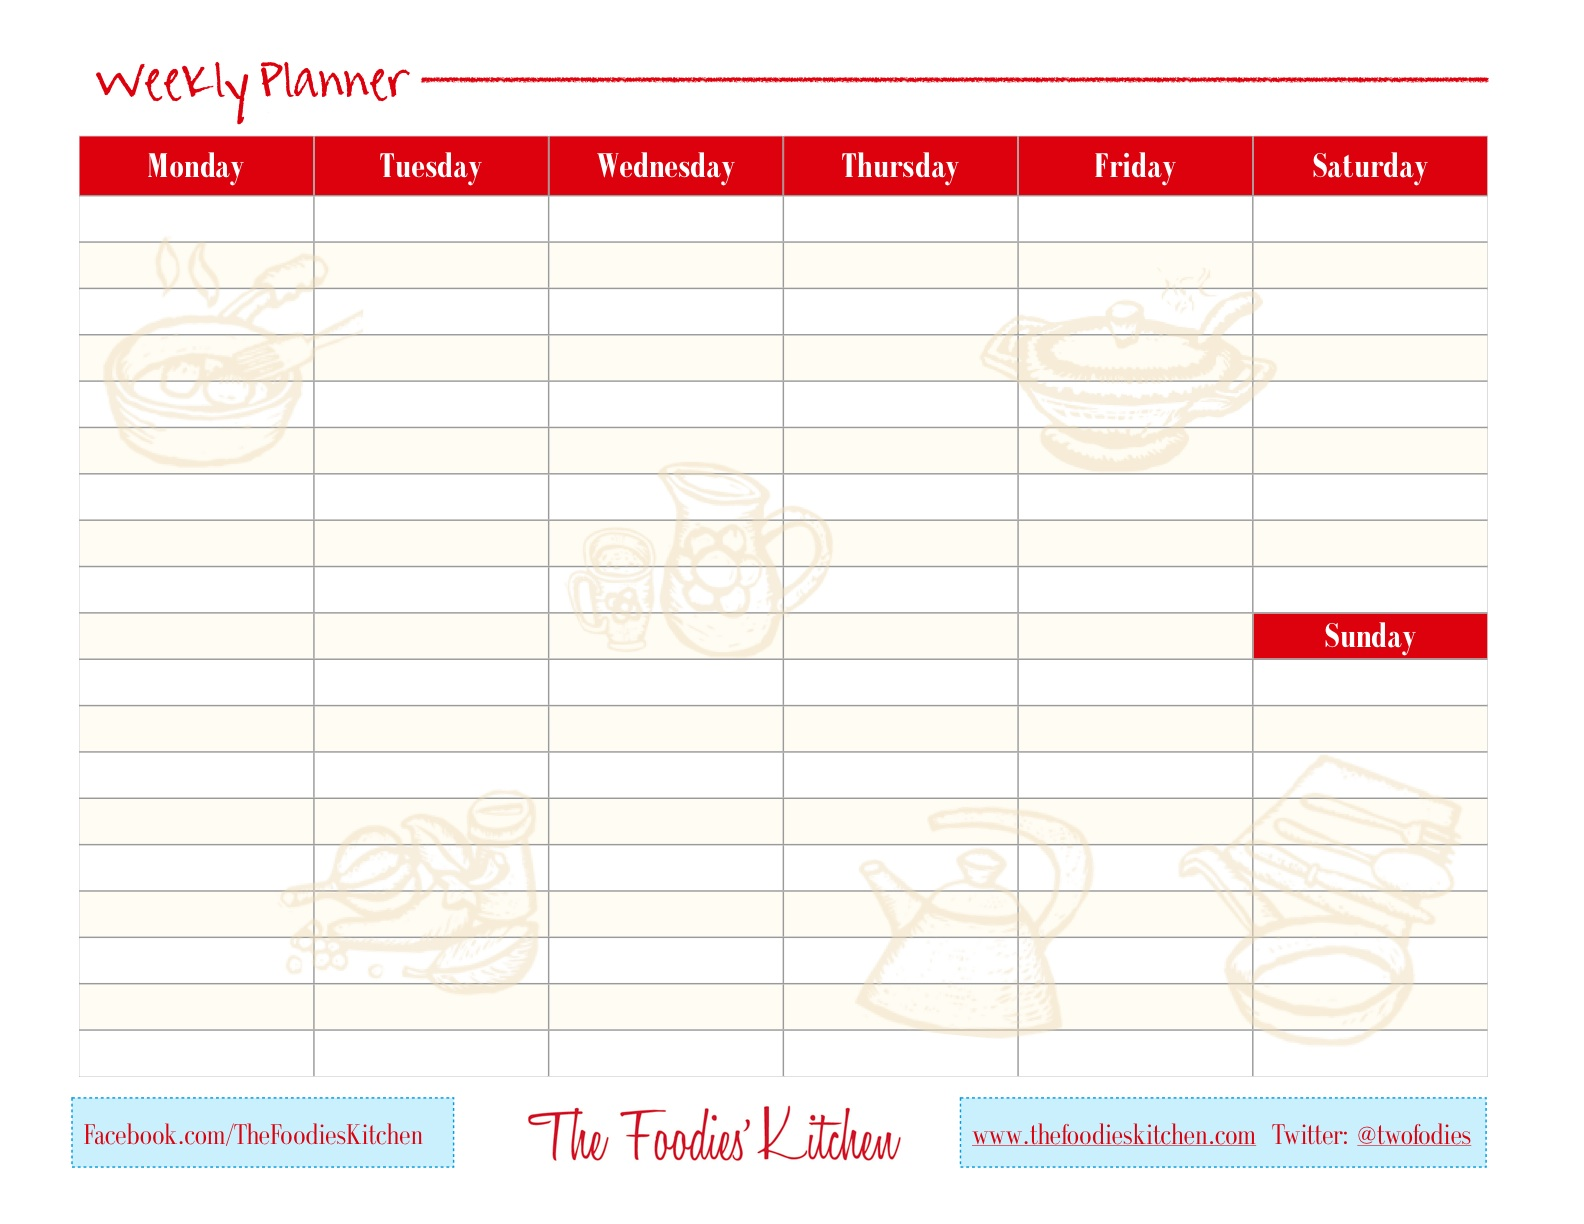 The Foodies' Kitchen Weekly Planner